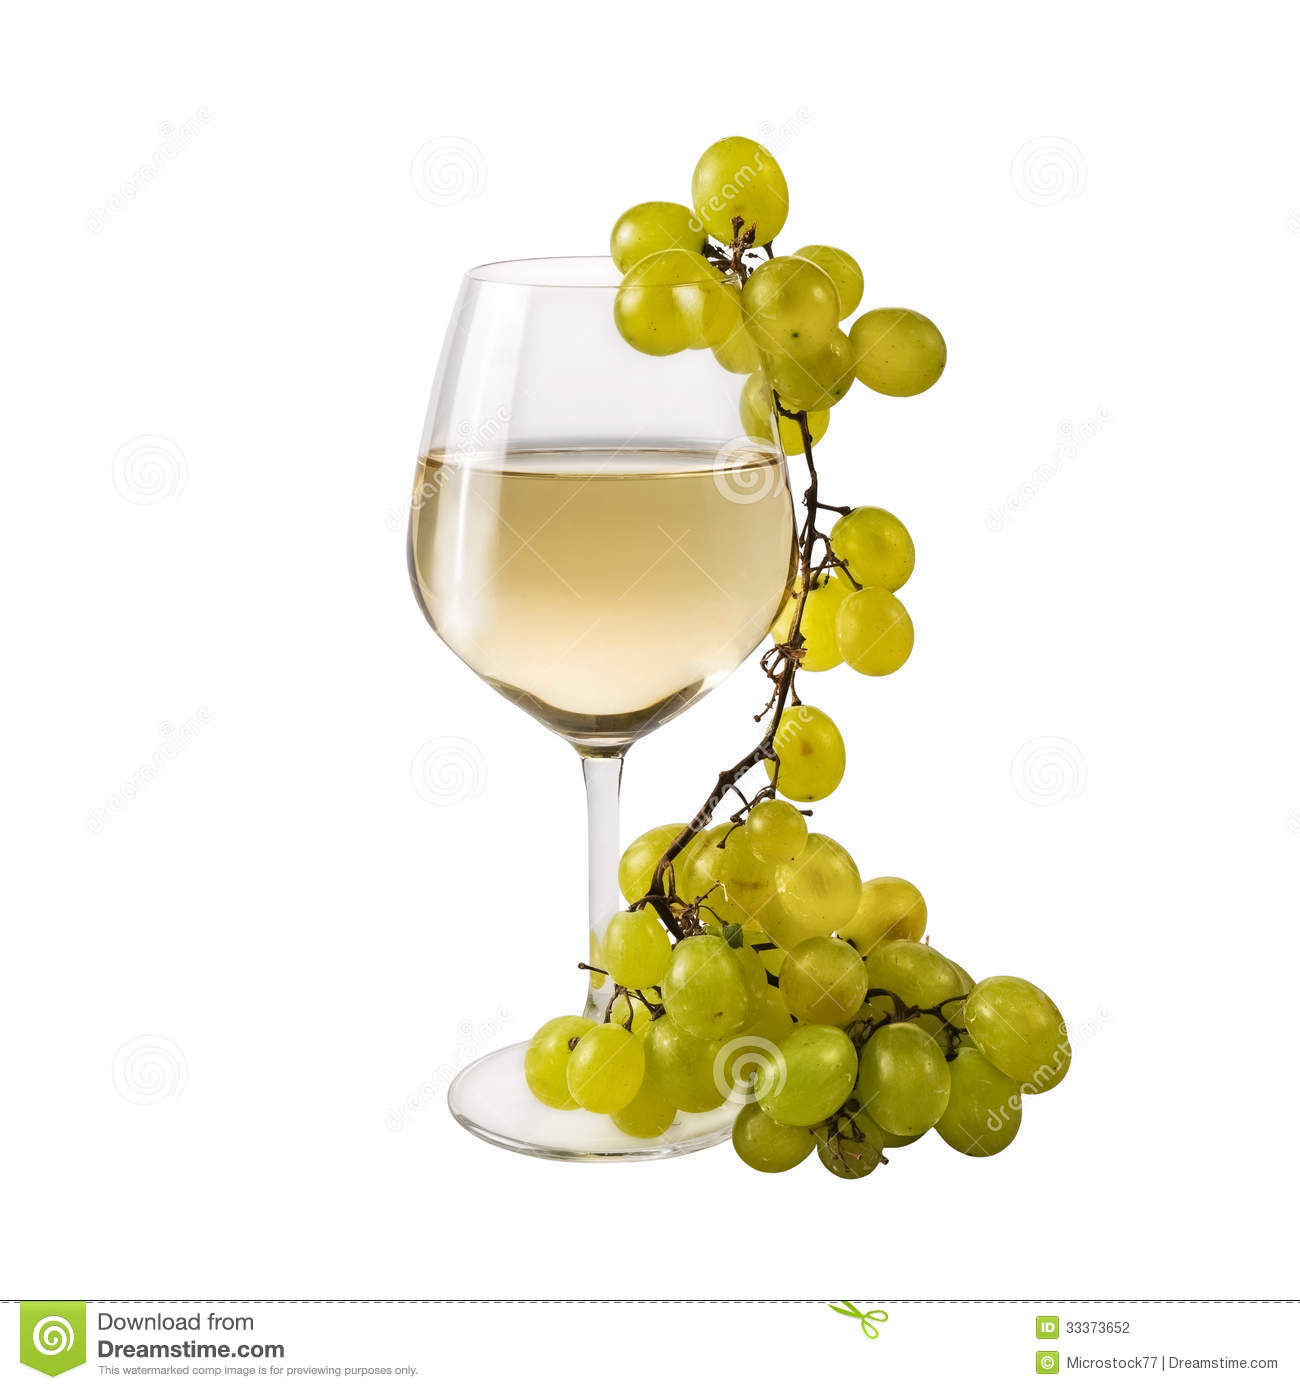 how to make white wine from grapes